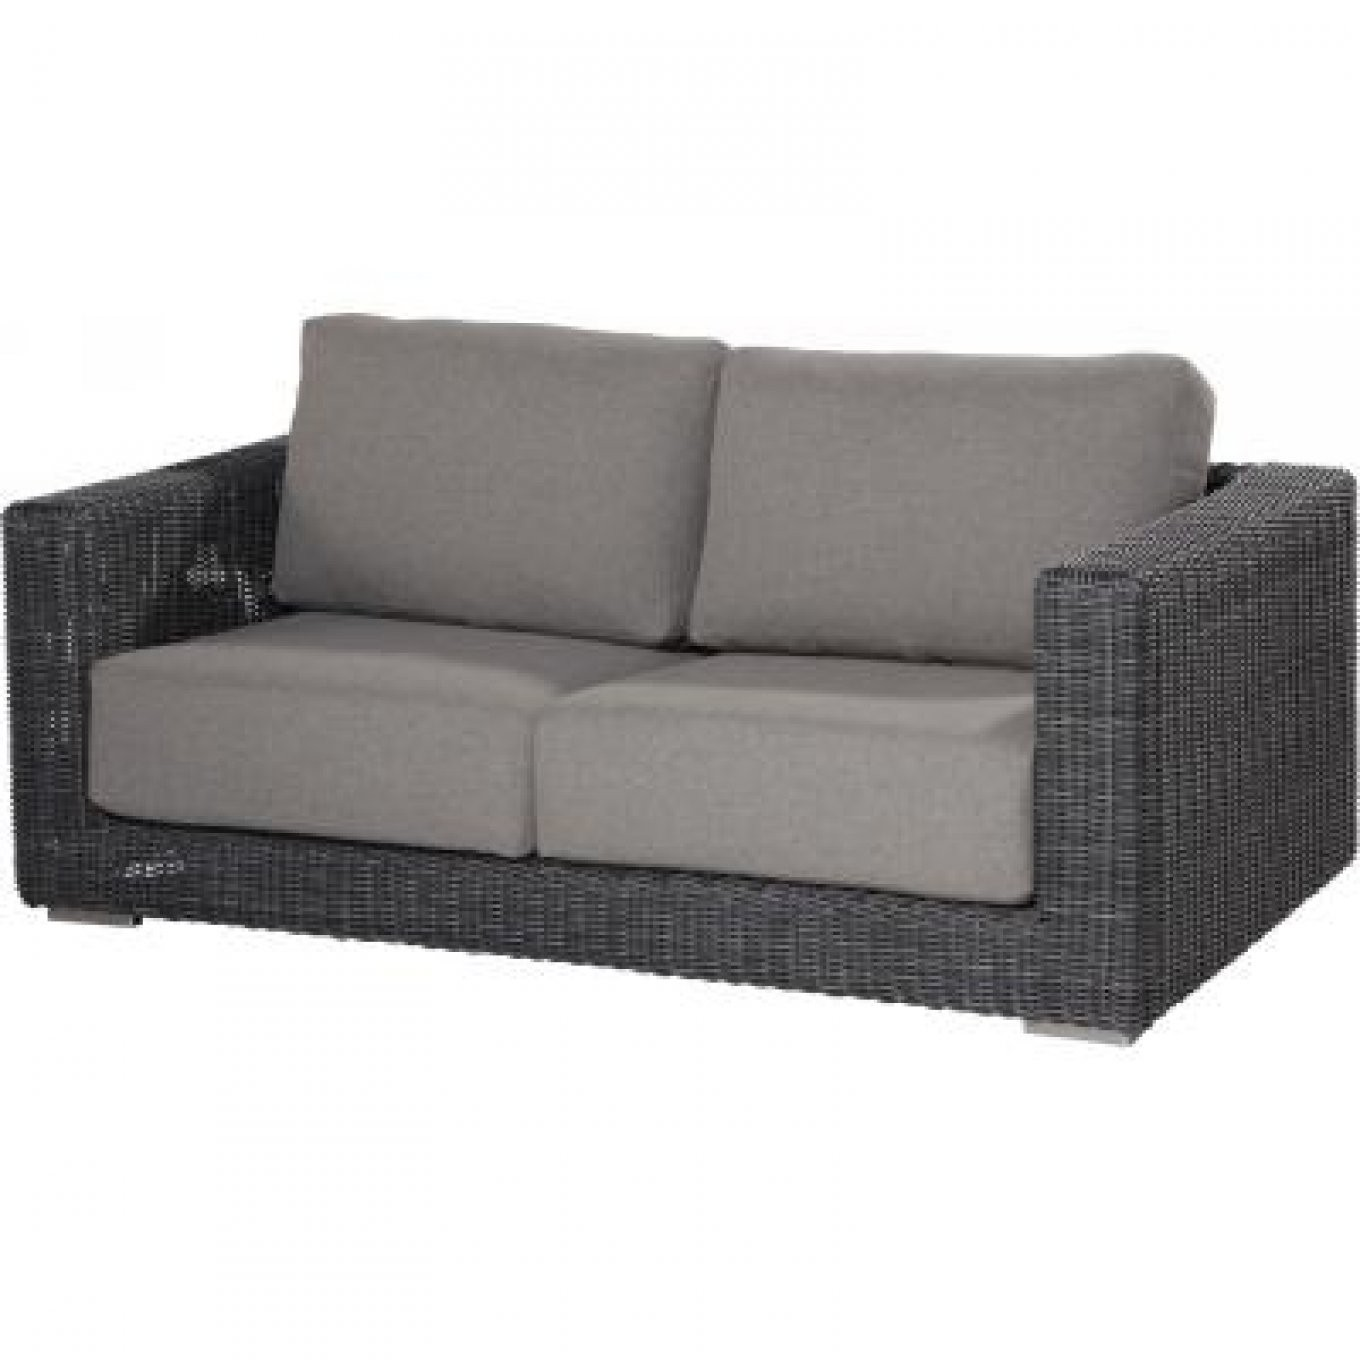 4Seasons Outdoor Somerset Sofa 25Sitzer Loungesofa Polyrattan von Polyrattan Sofa 2 Sitzer Photo